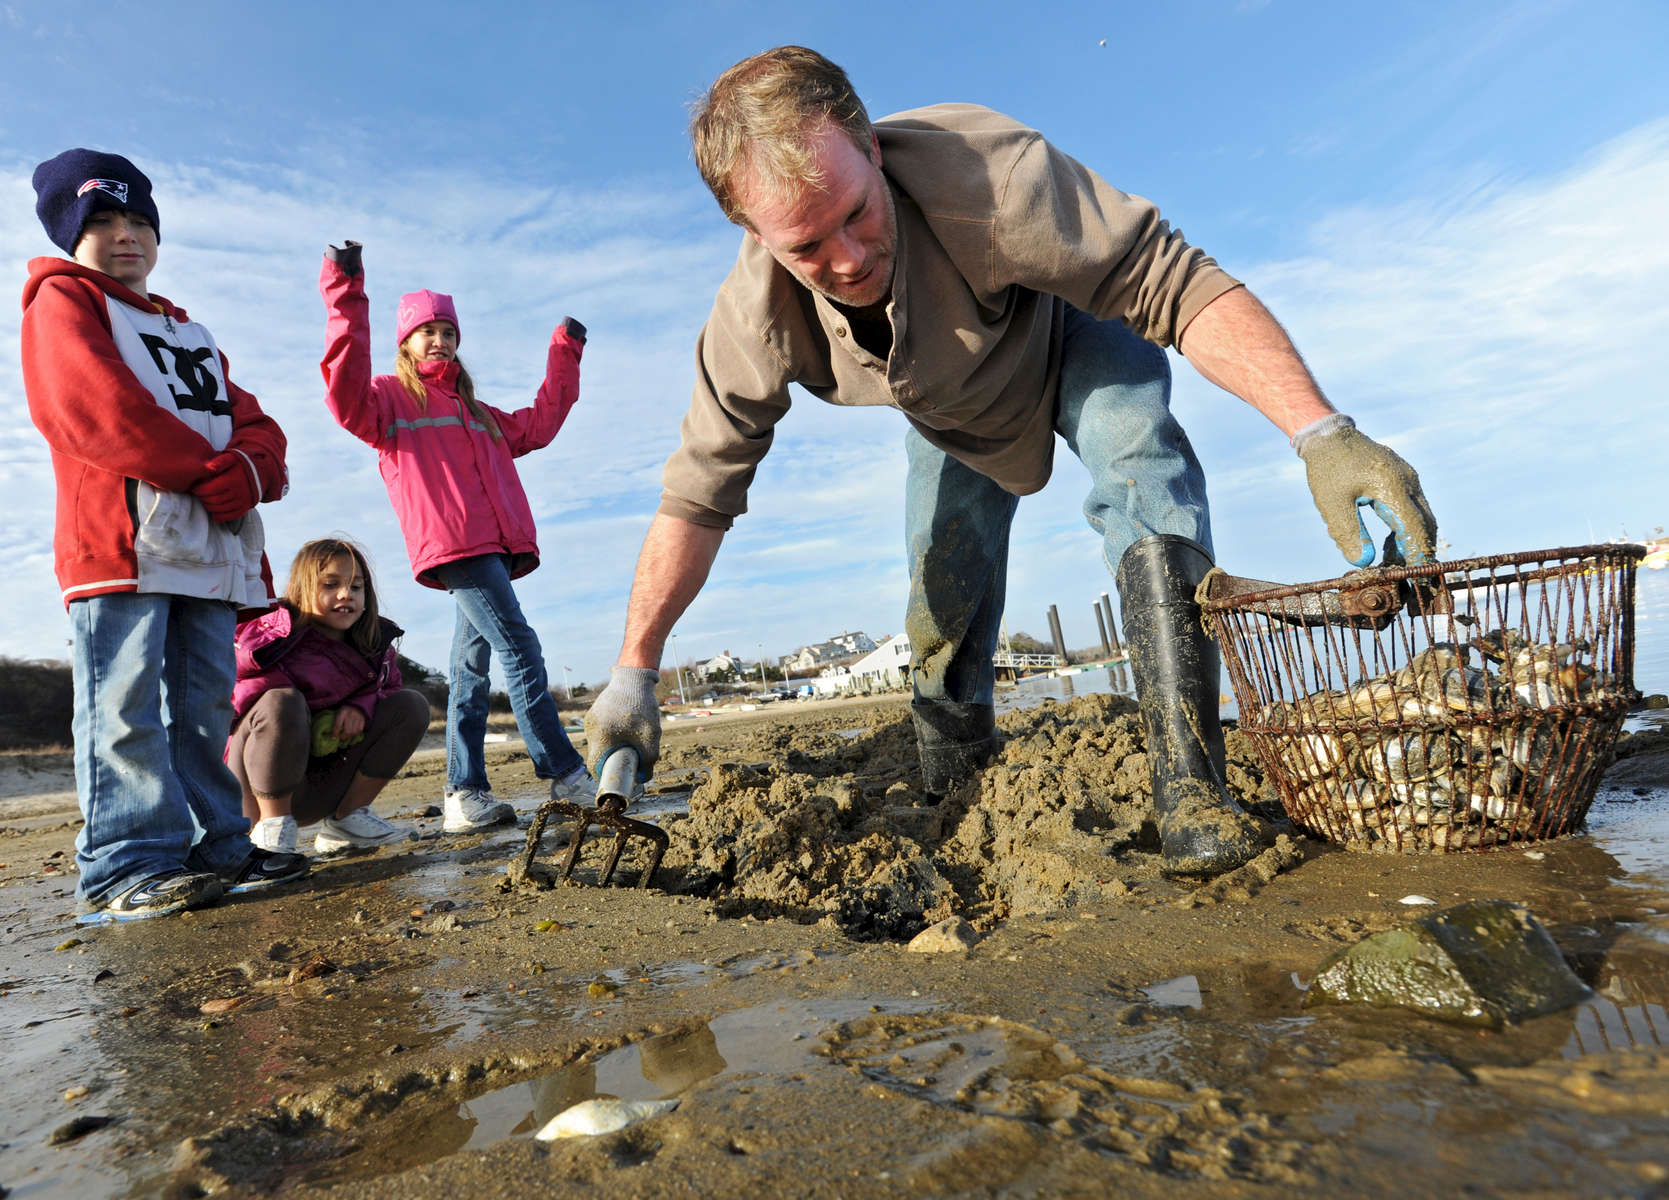 CHATHAM -- 120511 -- Commercial fisherman Chris Fontaine of Chatham digs up steamers for dinner with his daughters Christiana, 10, center, and Rabecca Fontaine, 9, and stepson Maddy White, 9, left, near the Fish Pier. The kids were able to accompany Chris on his clamming expedition because they had a half day of school. Chris was trying to fill a bushel basket before taking Maddy to his yoga class. For this family of seven, planning meals can be a challenge. He and his wife will enjoy the steamers but the kids don't have the palate for shellfish. They said they are voting to decide between tacos and burgers.  Cape Cod Times/Christine Hochkeppel 120511ch01